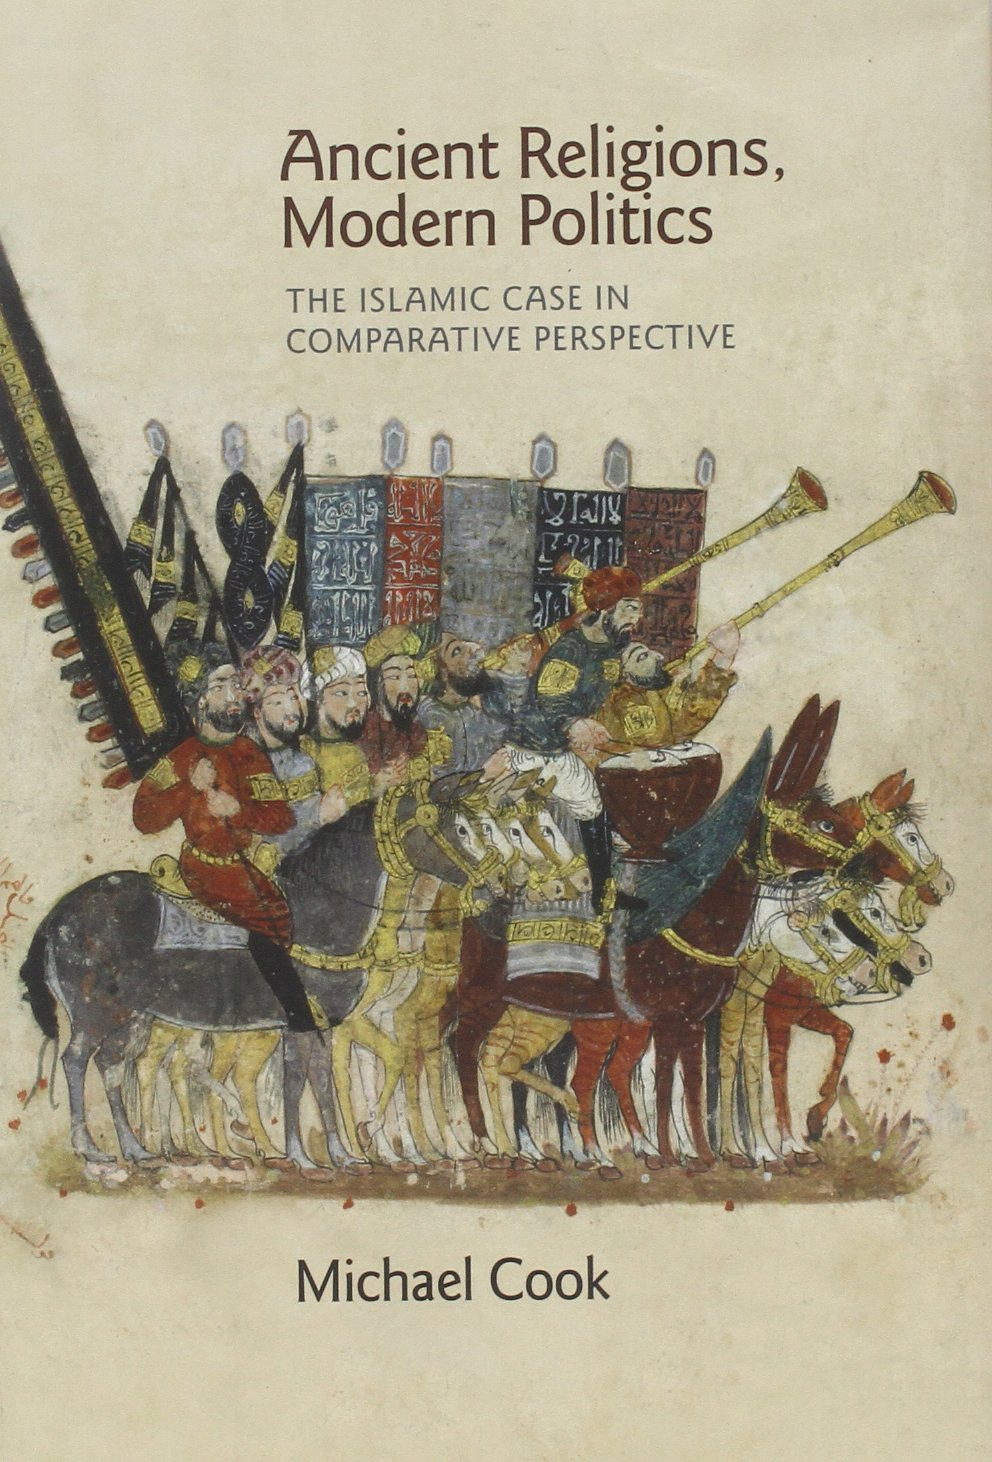 Ancient Religions, Modern Politics: The Islamic Case in Comparative Perspective PDF